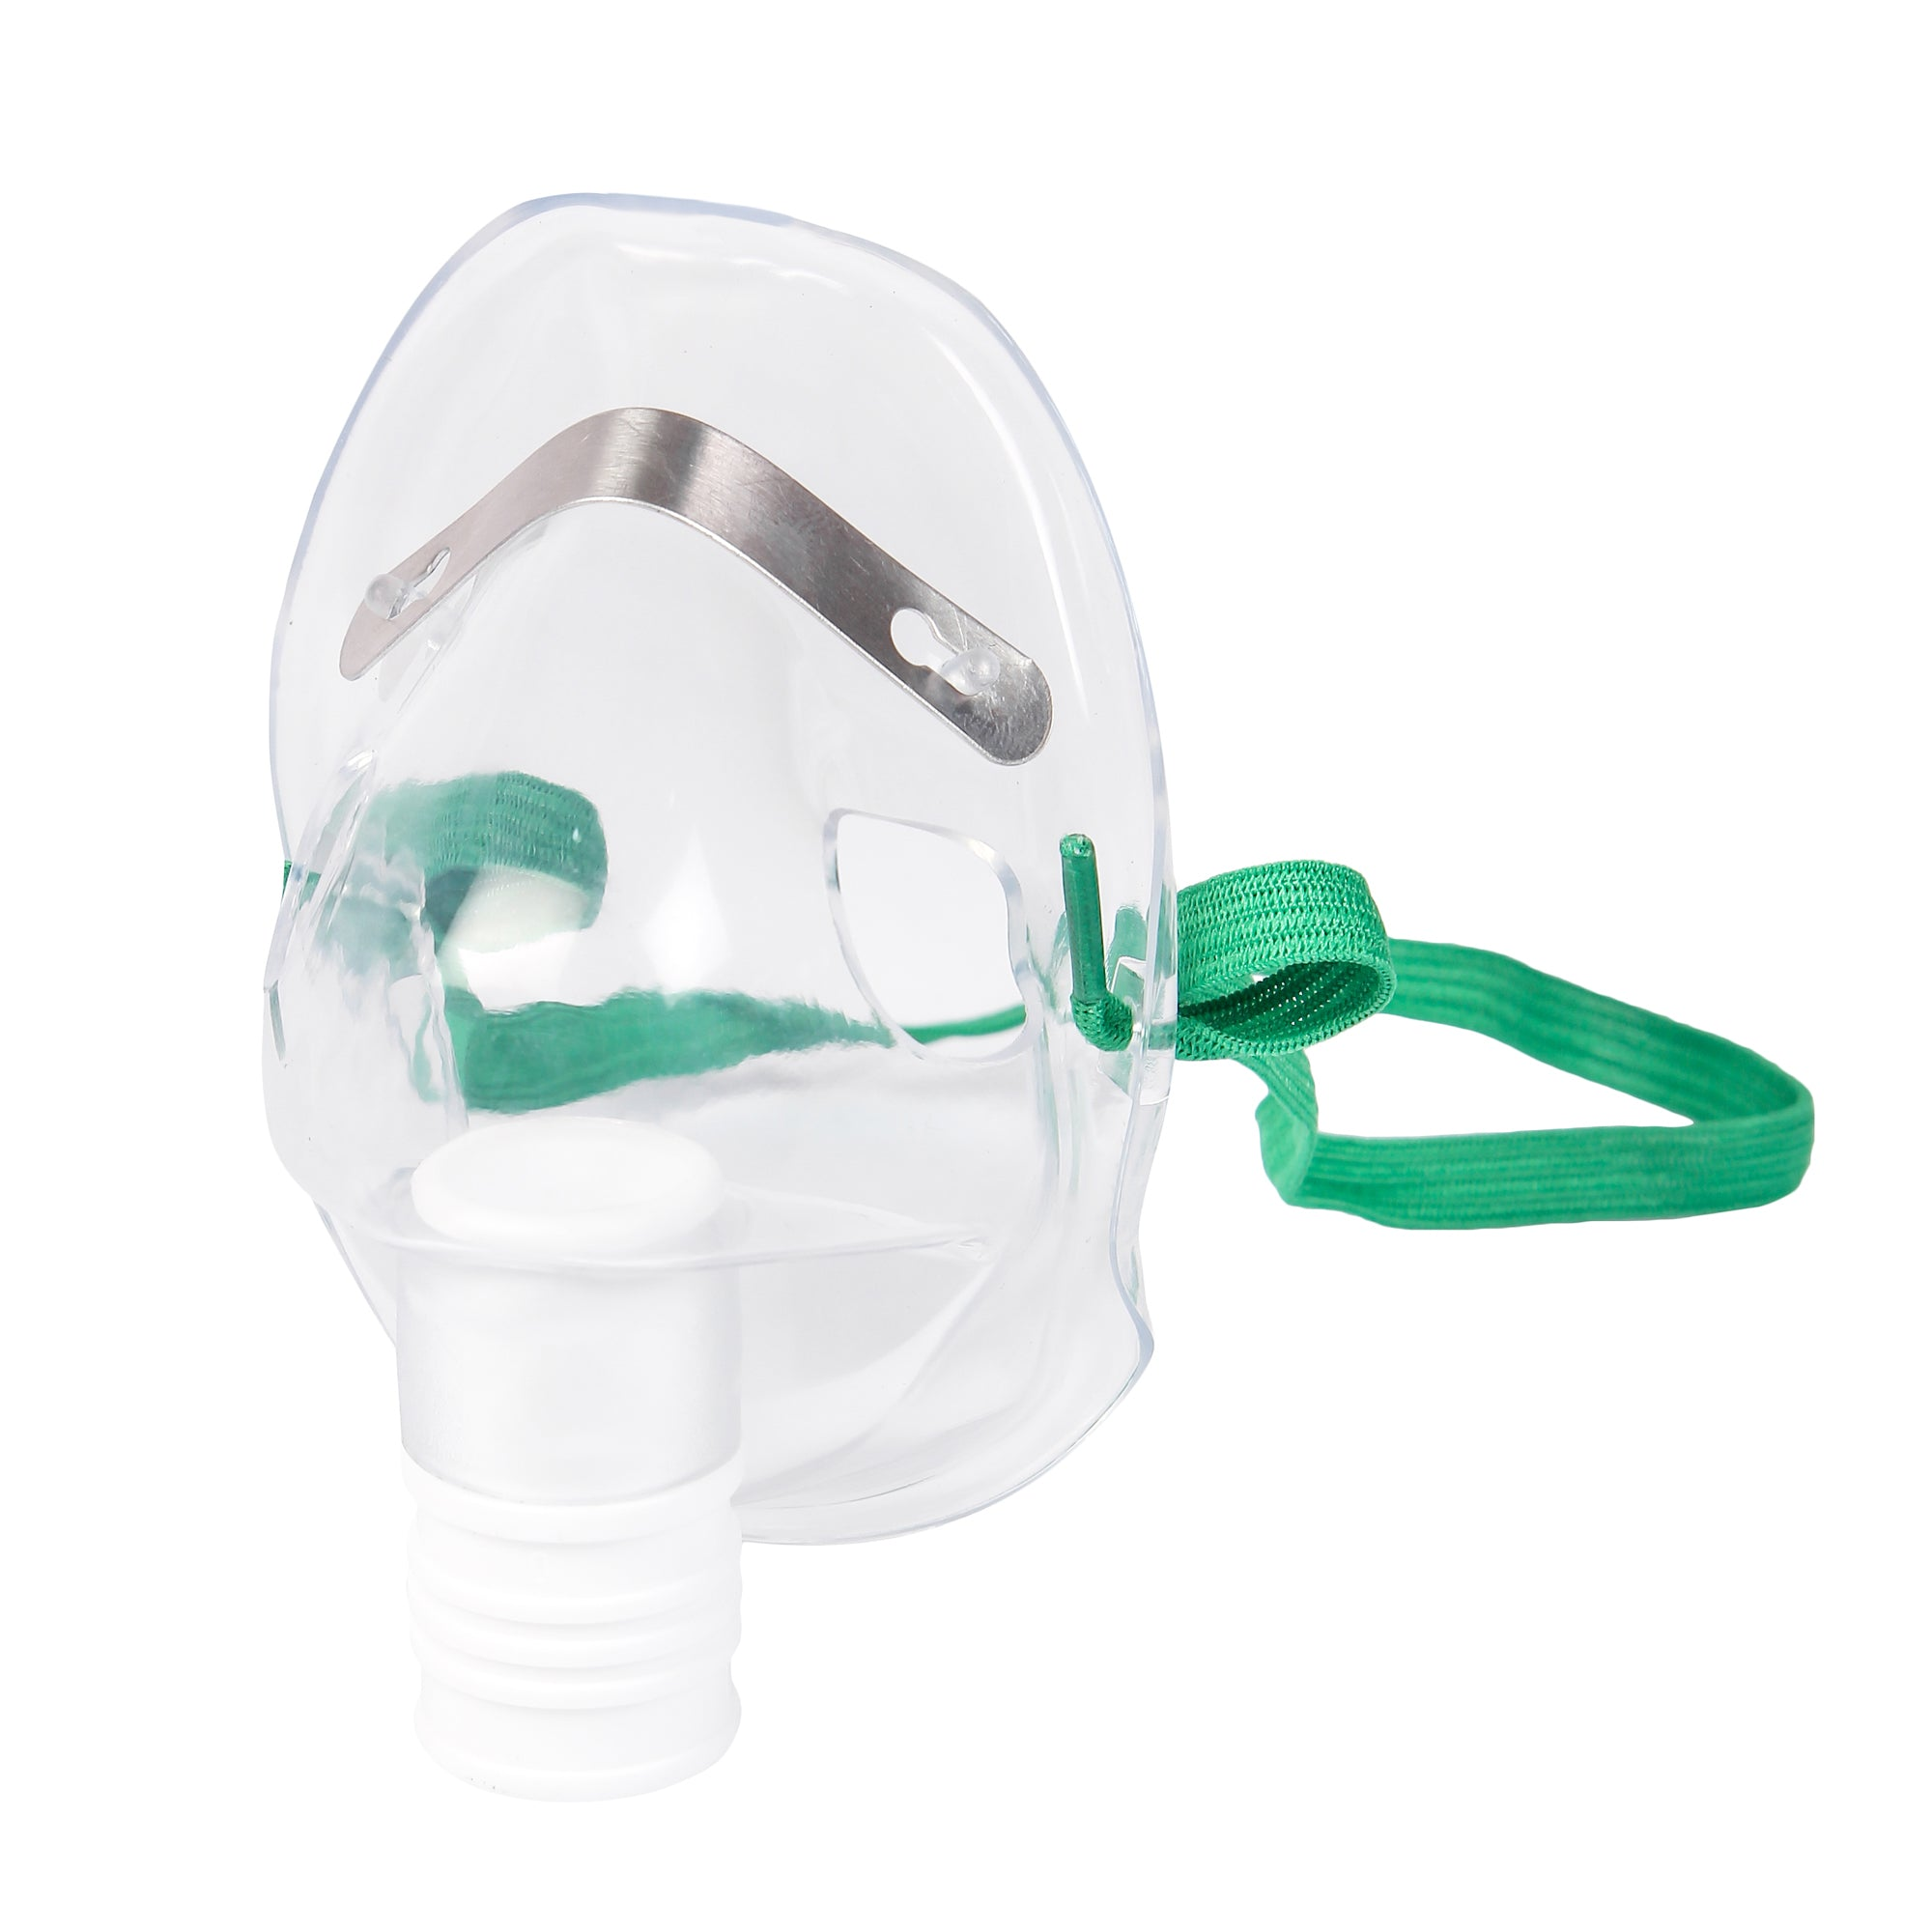 Control D Pediatric Child Mask Kit with Air Tube,Medicine Chamber Nebulizer